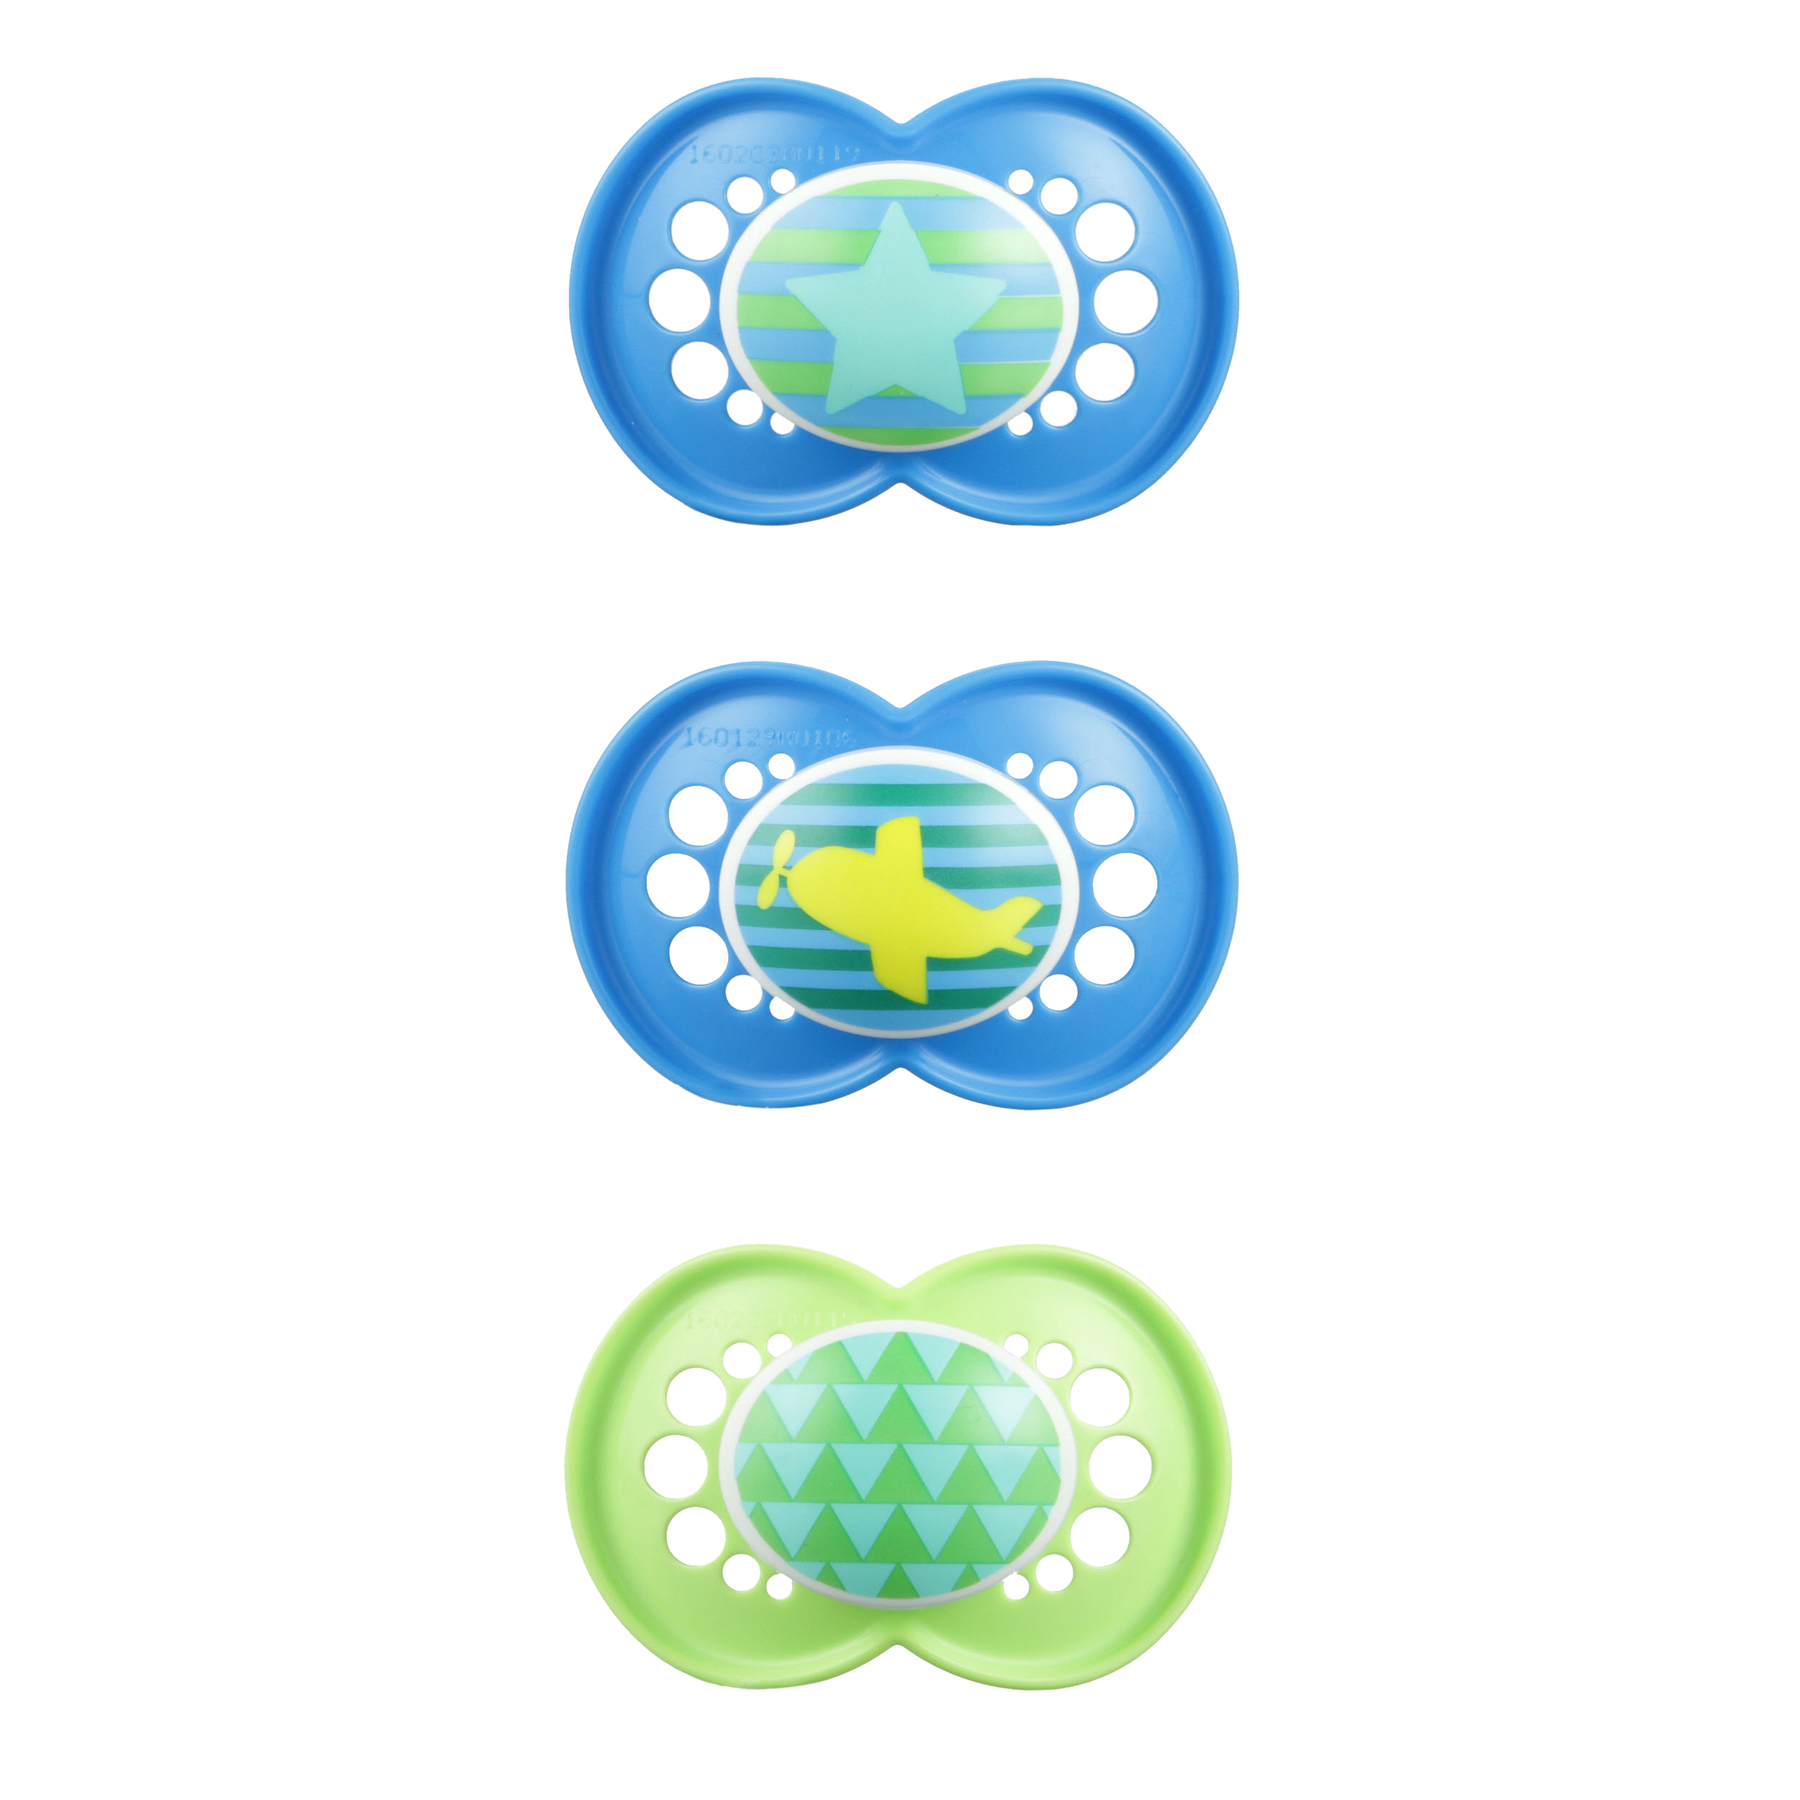 MAM Trends Orthodontic Pacifier, COLORS MAY VARY, 6+ Months, 3 Count